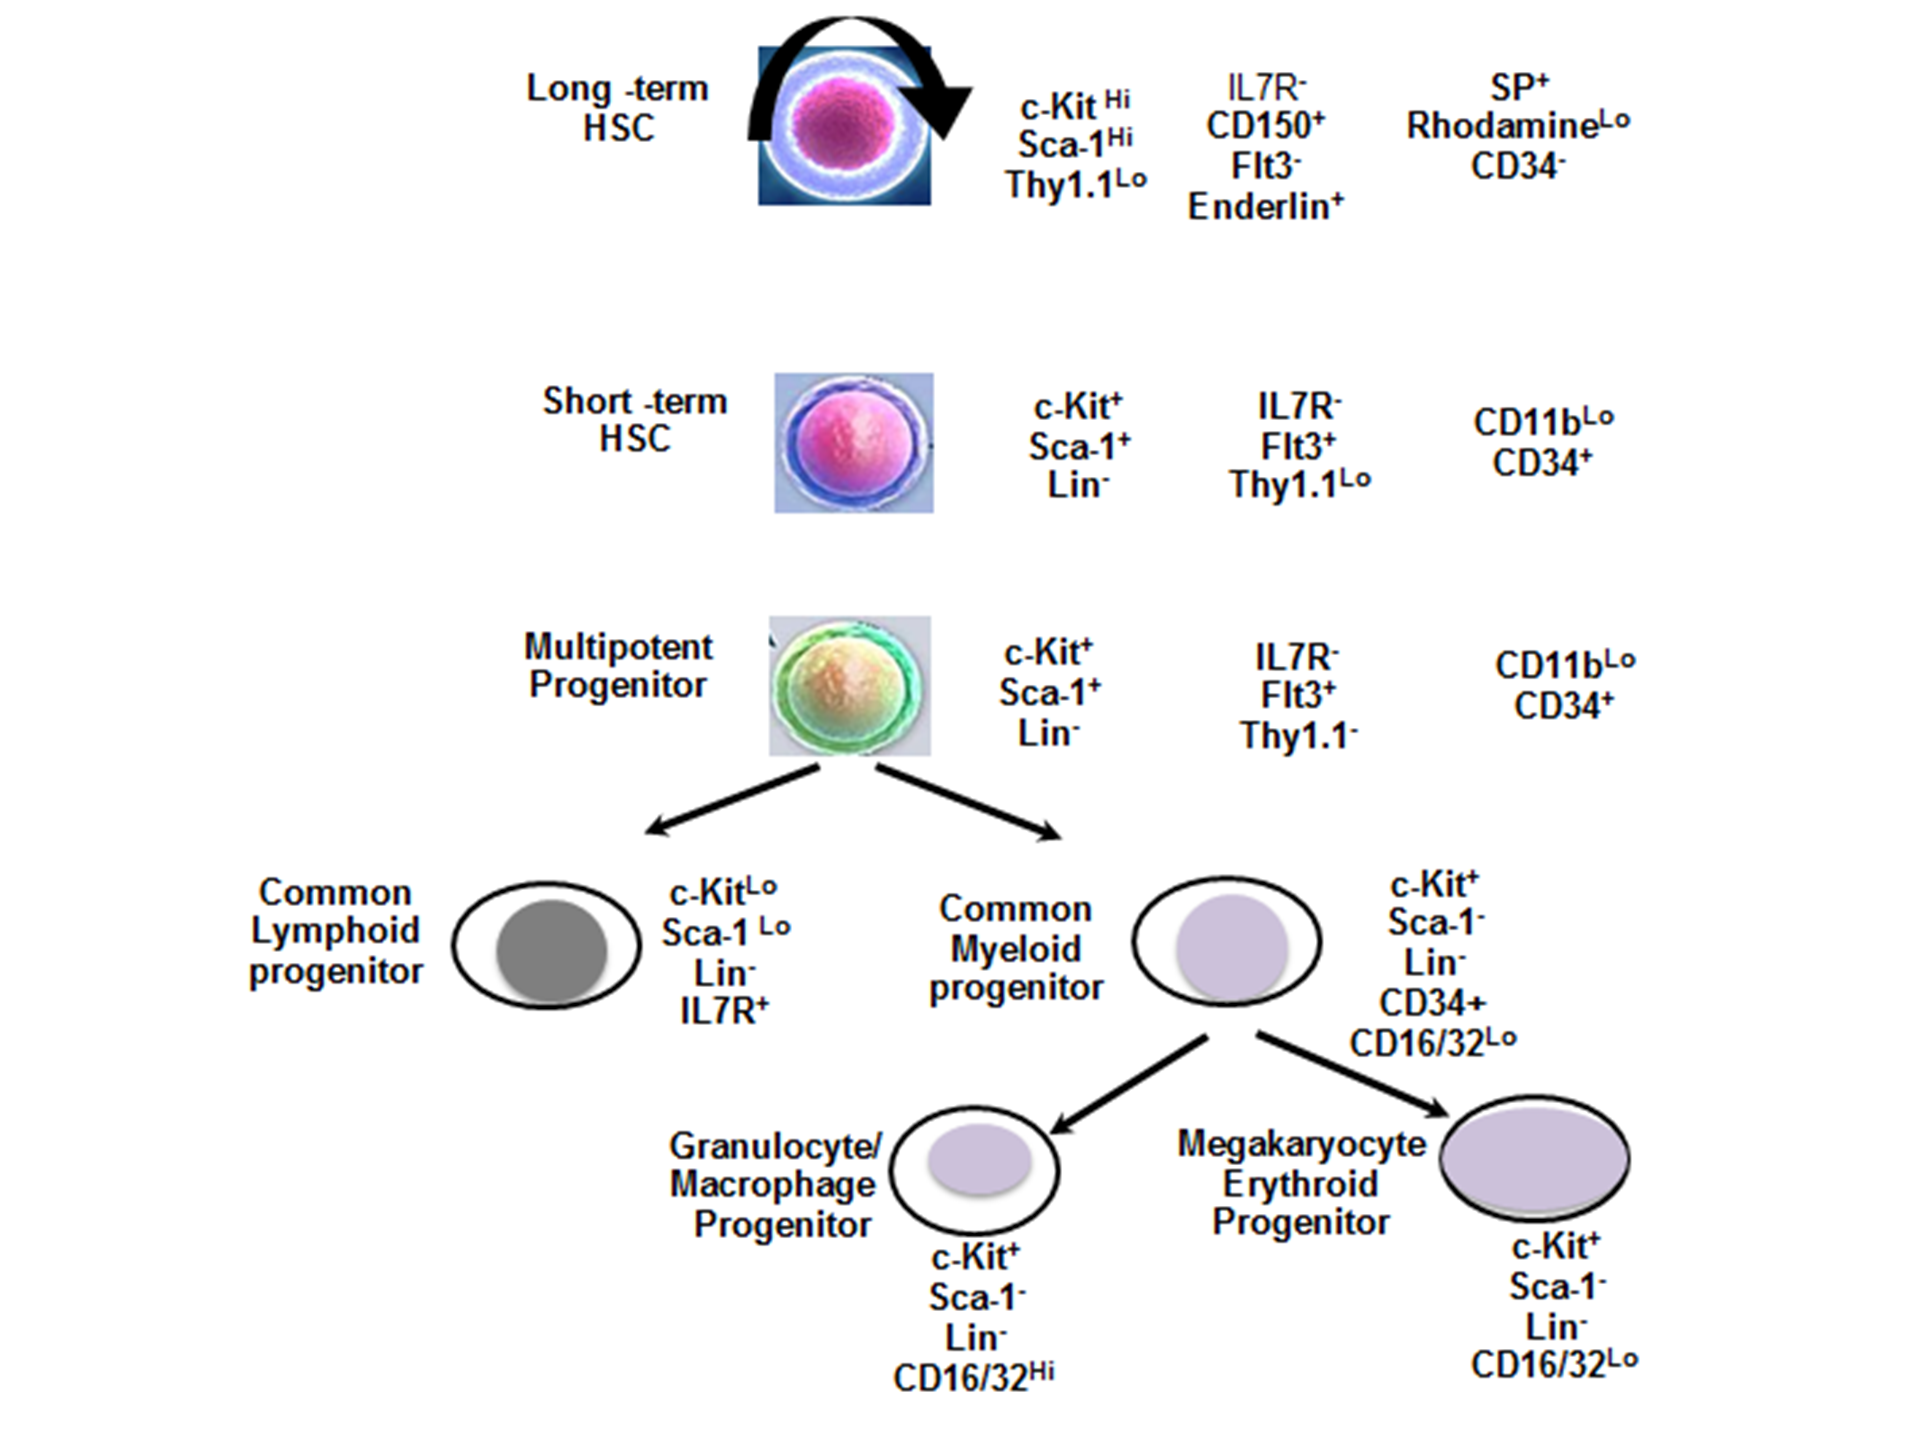 Can believe adult stem cells versus embryonic